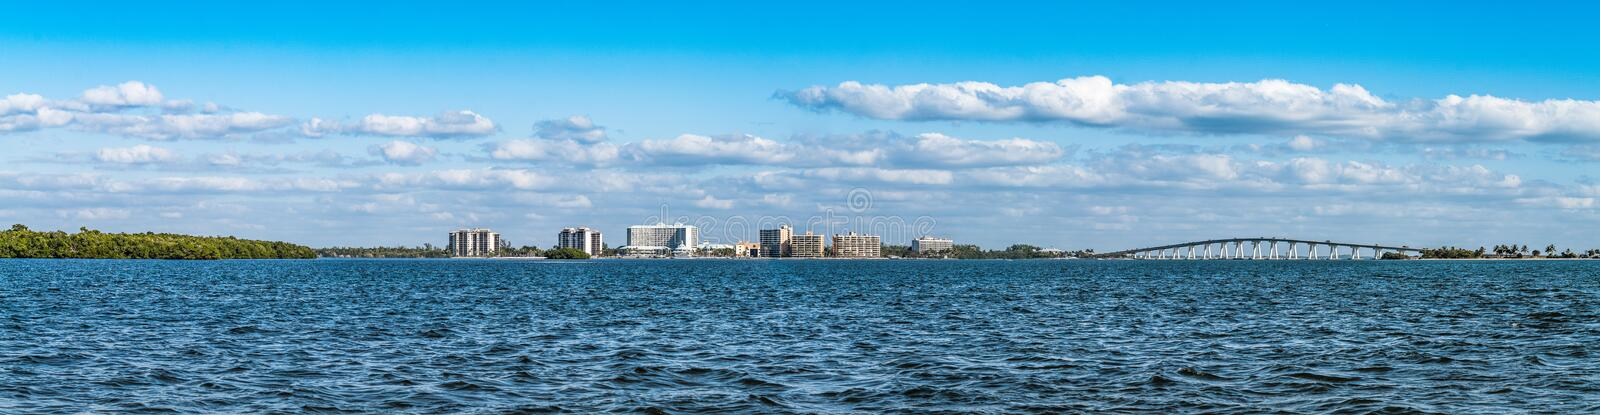 Panoramic view of coastal areas in Punta Rassa landscape stock images